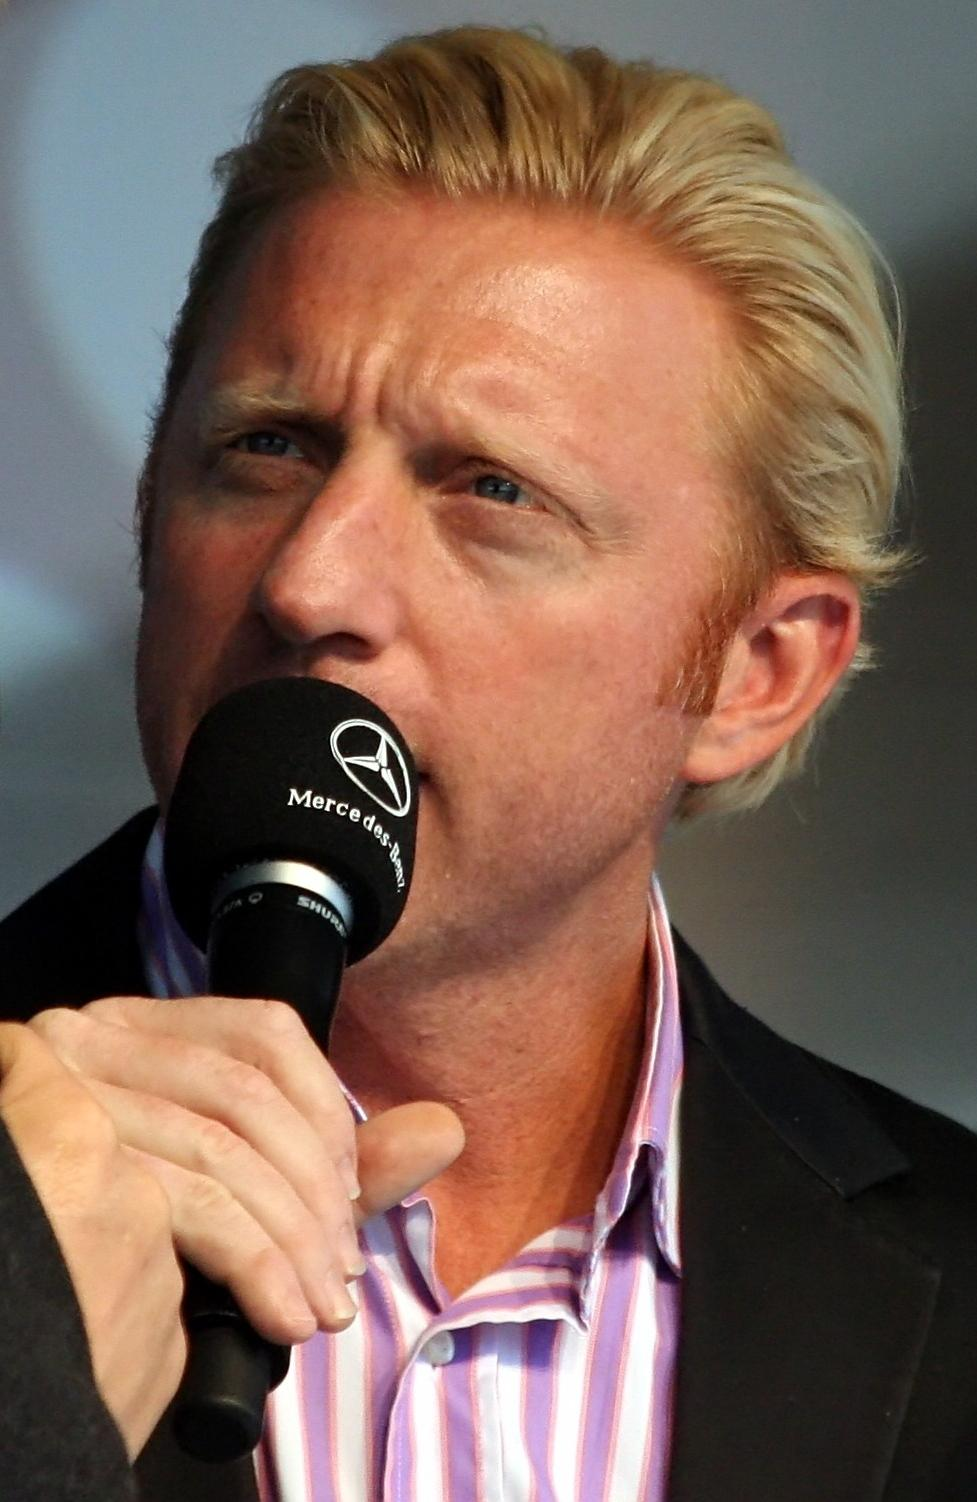 Boris Becker achieved more at the age of 17 than we probably will in a lifetime and we are totally and absolutely cool with that